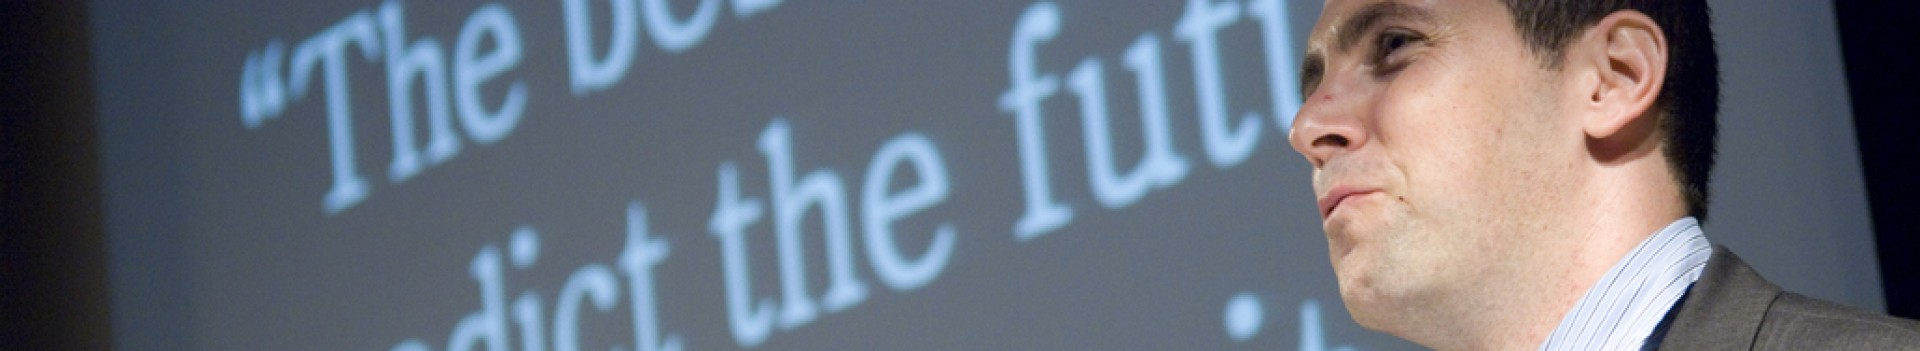 """Man by projector screen showing """"The best way to predict the future is to create it"""""""